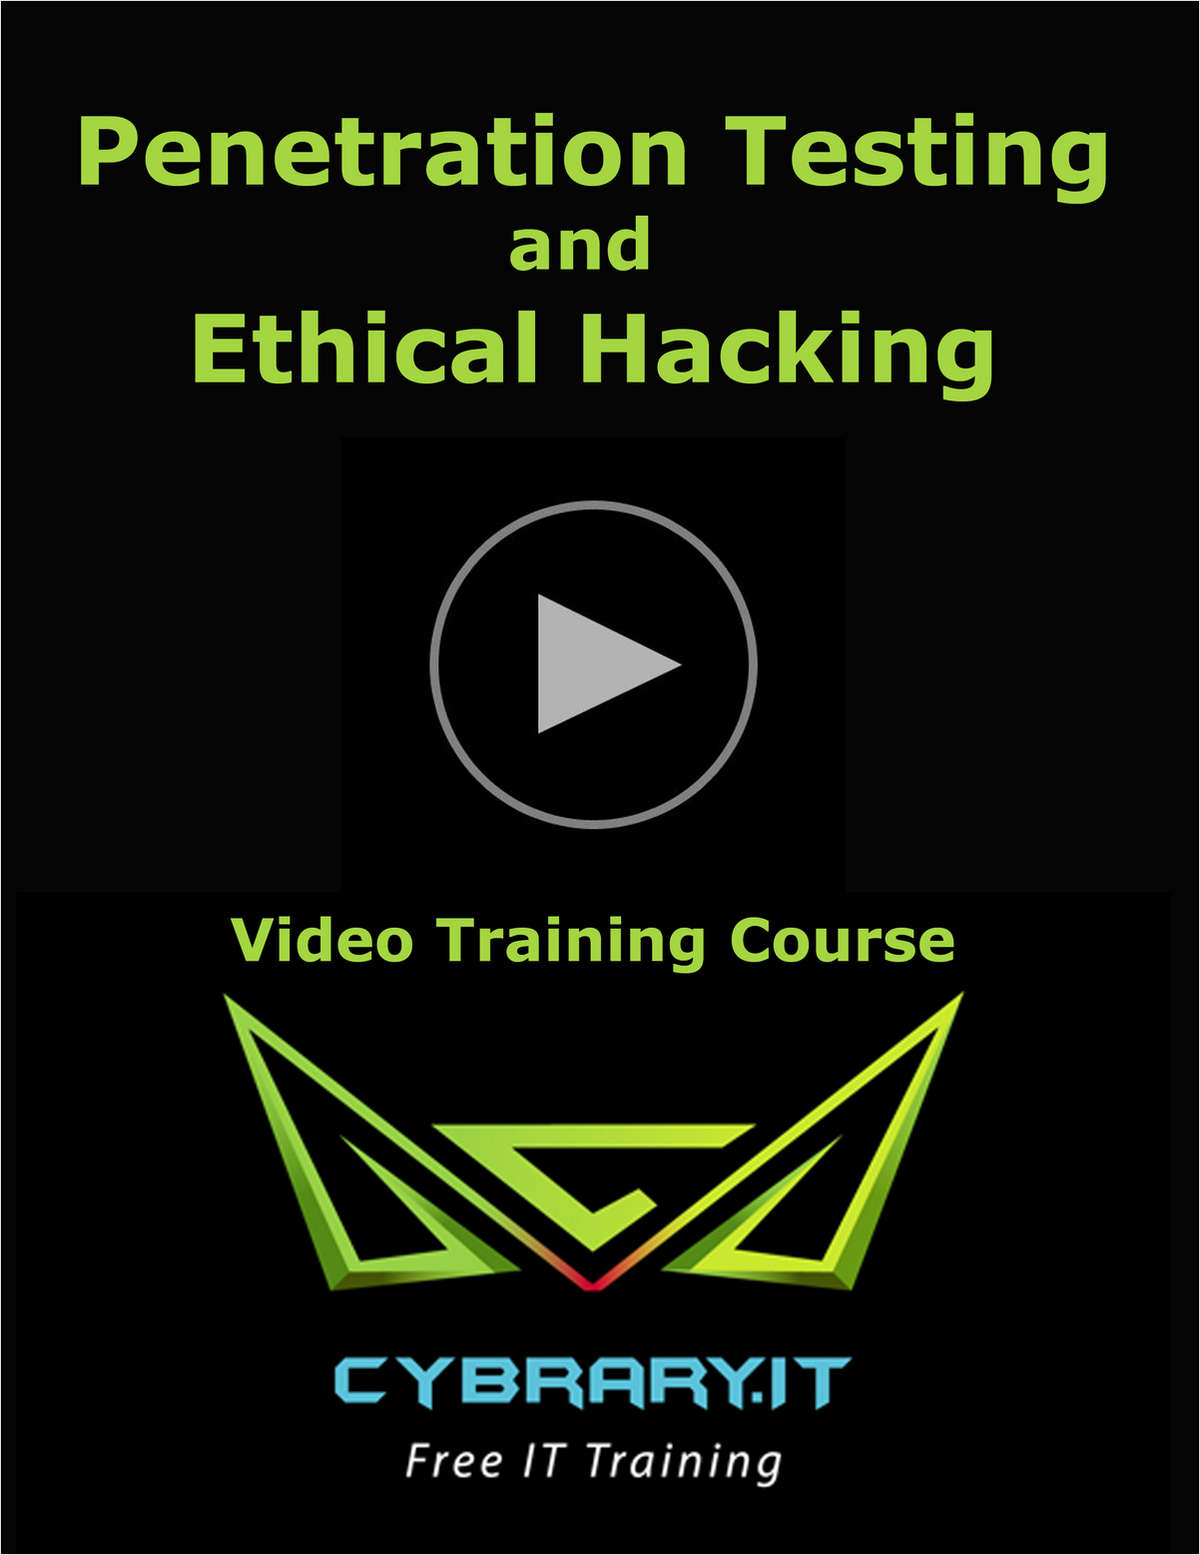 Online Penetration Testing and Ethical Hacking - FREE Video Training Course Screenshot